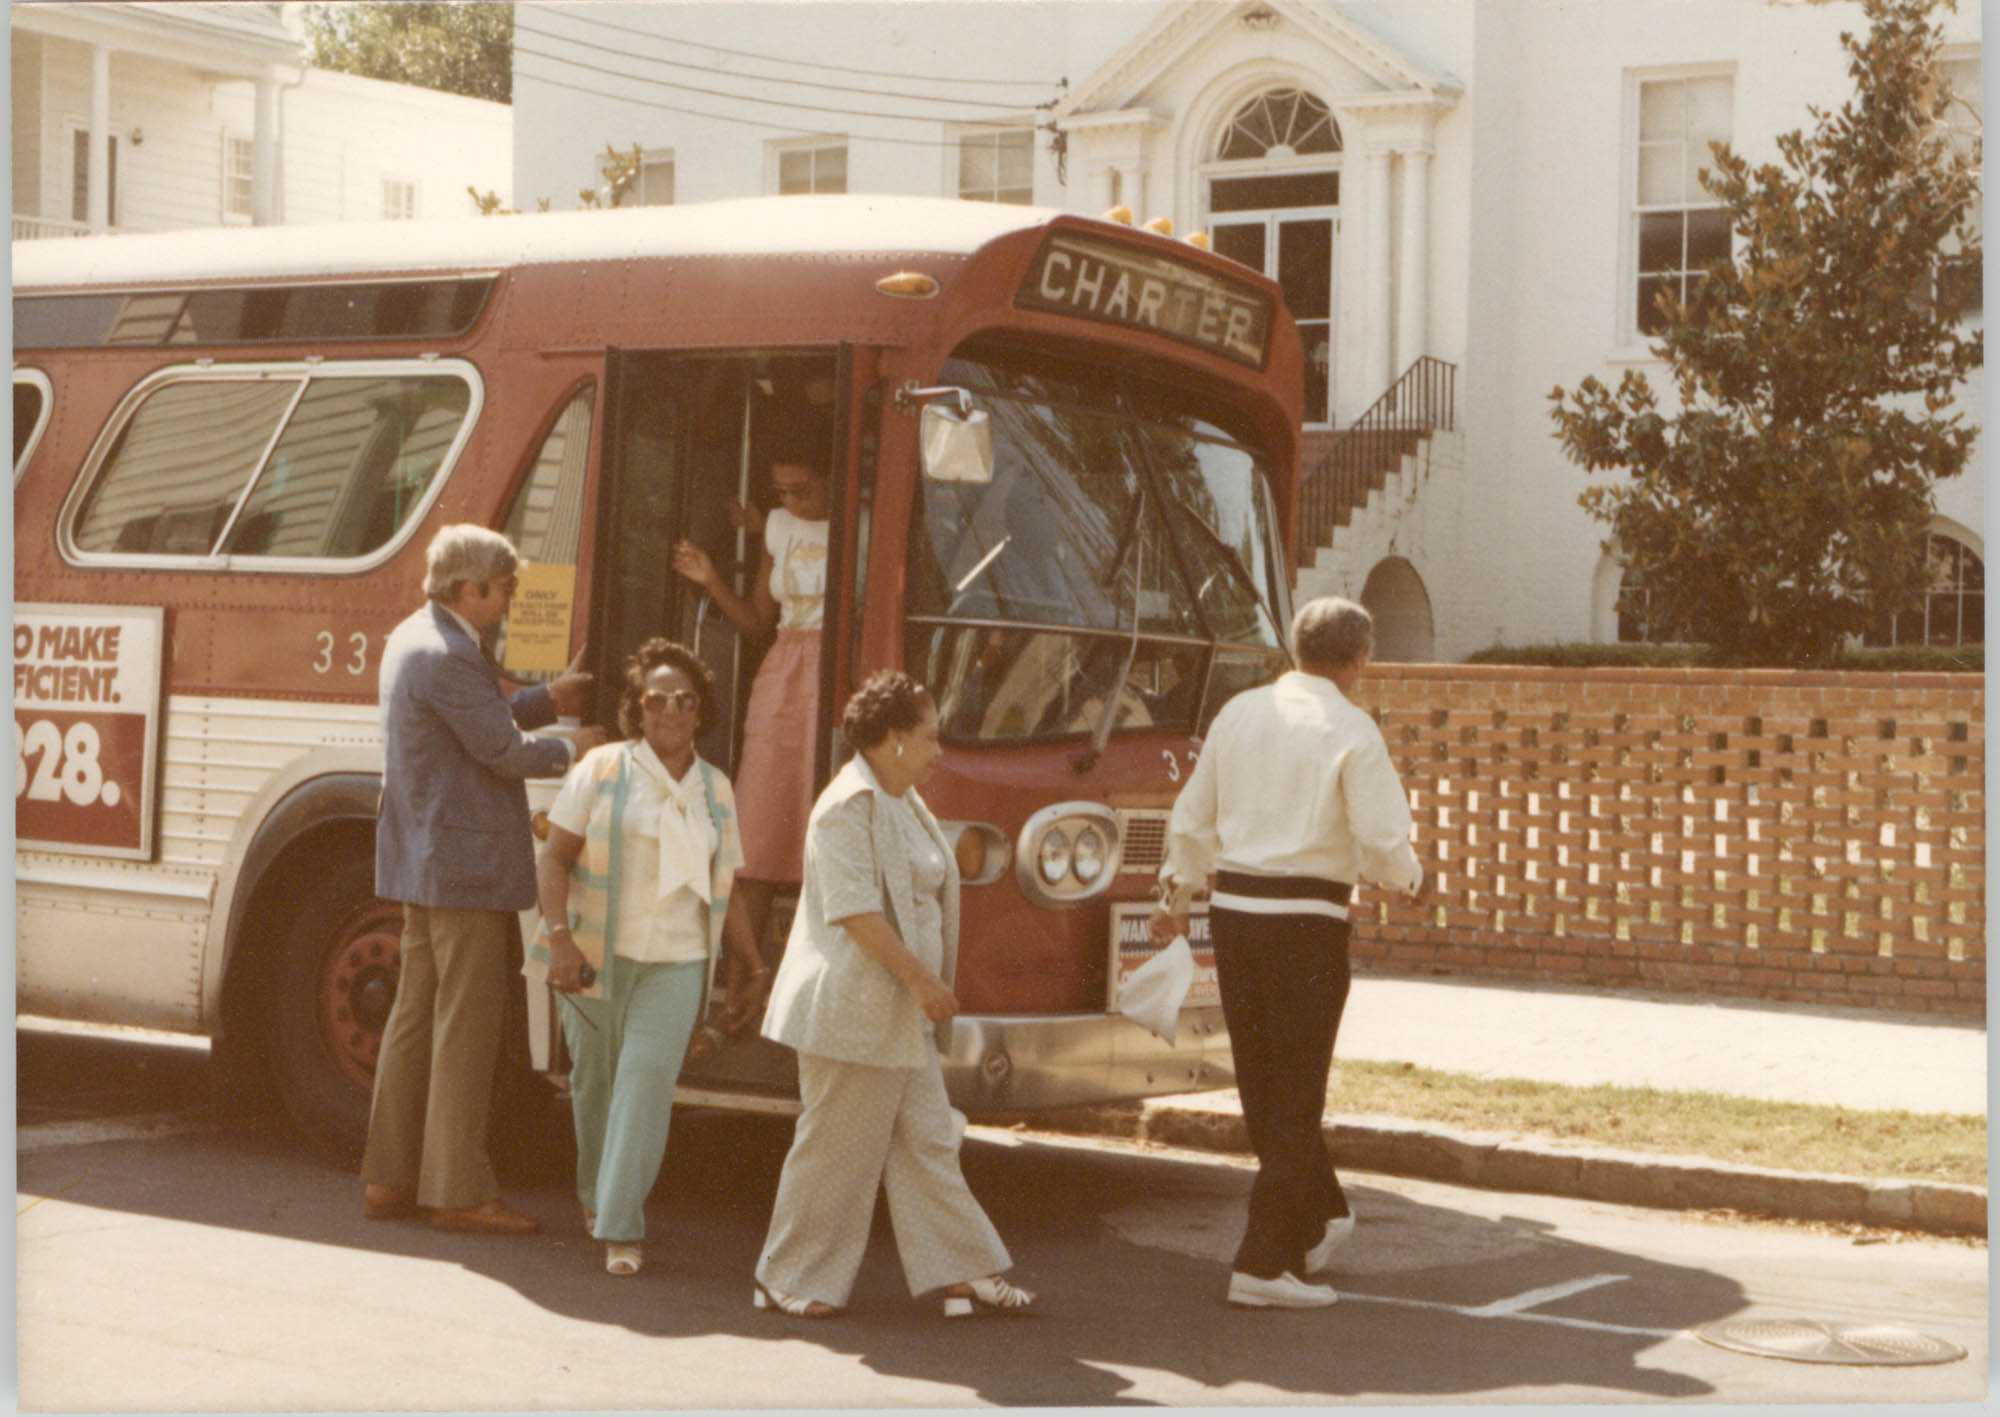 Photograph of People Exiting a Bus